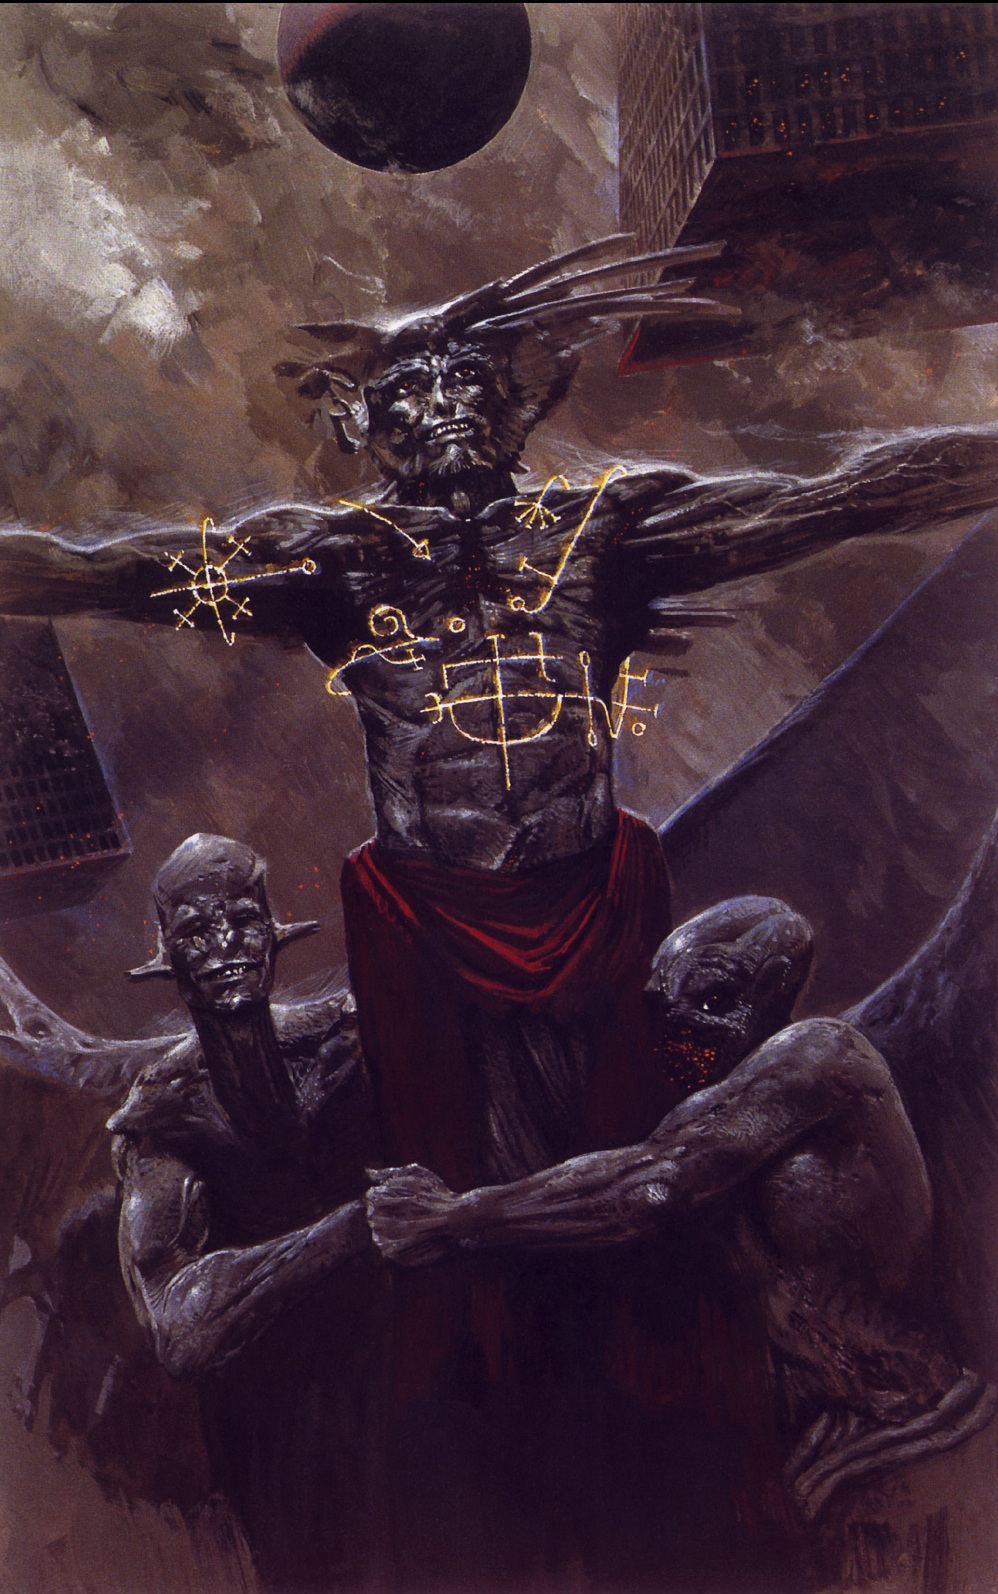 Wayne Barlowe: Belial in the New World